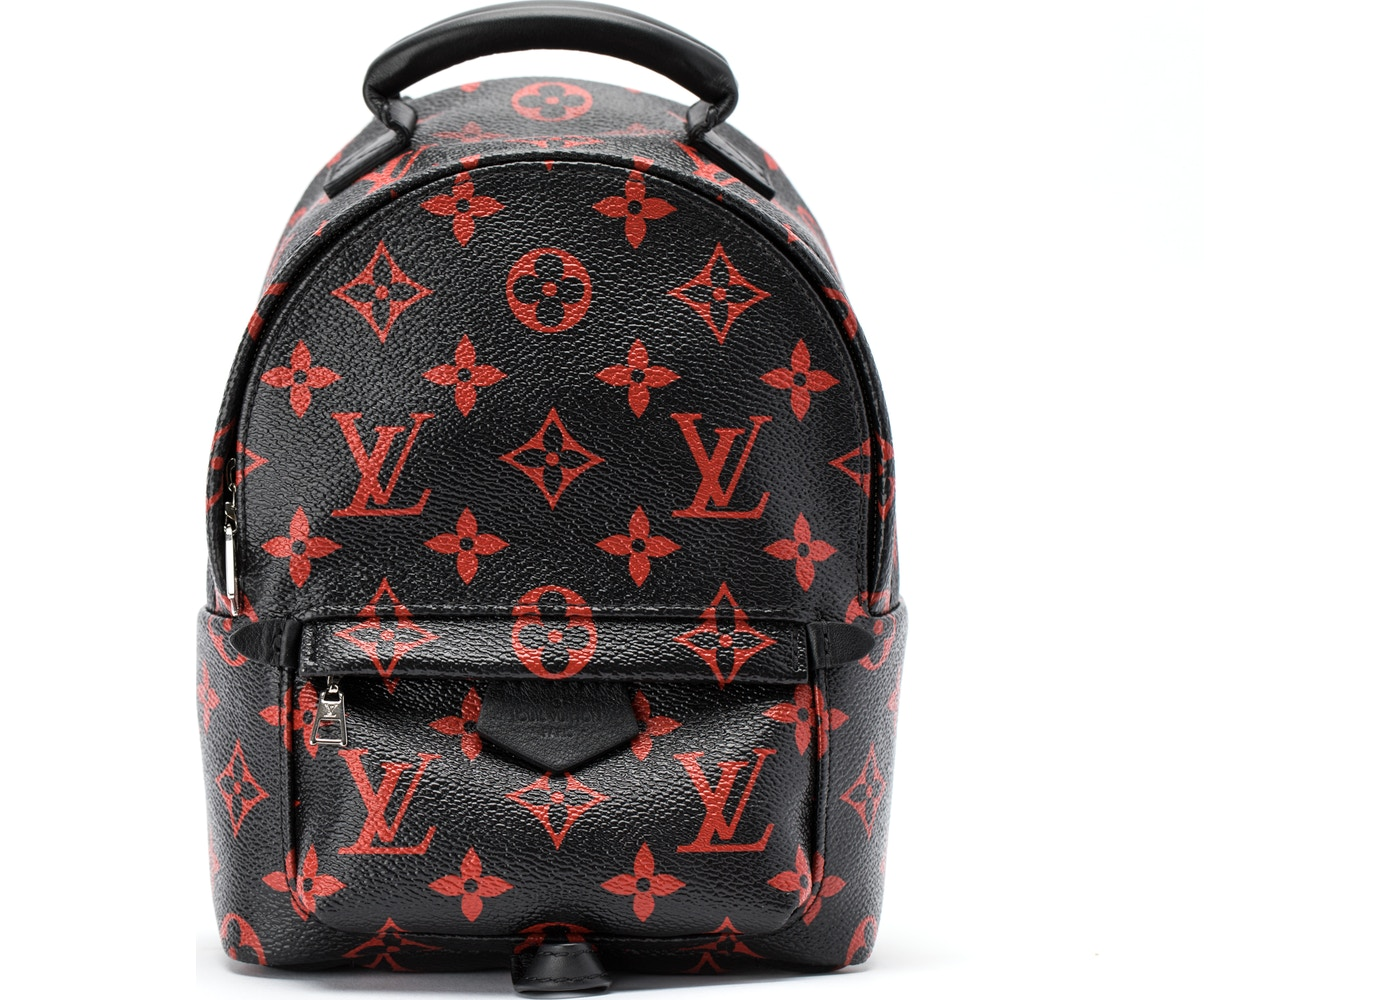 f84501ee8a99 Louis Vuitton Backpack Palm Springs Monogram Infrarouge Mini Black Red.  Monogram Infrarouge Mini Black Red